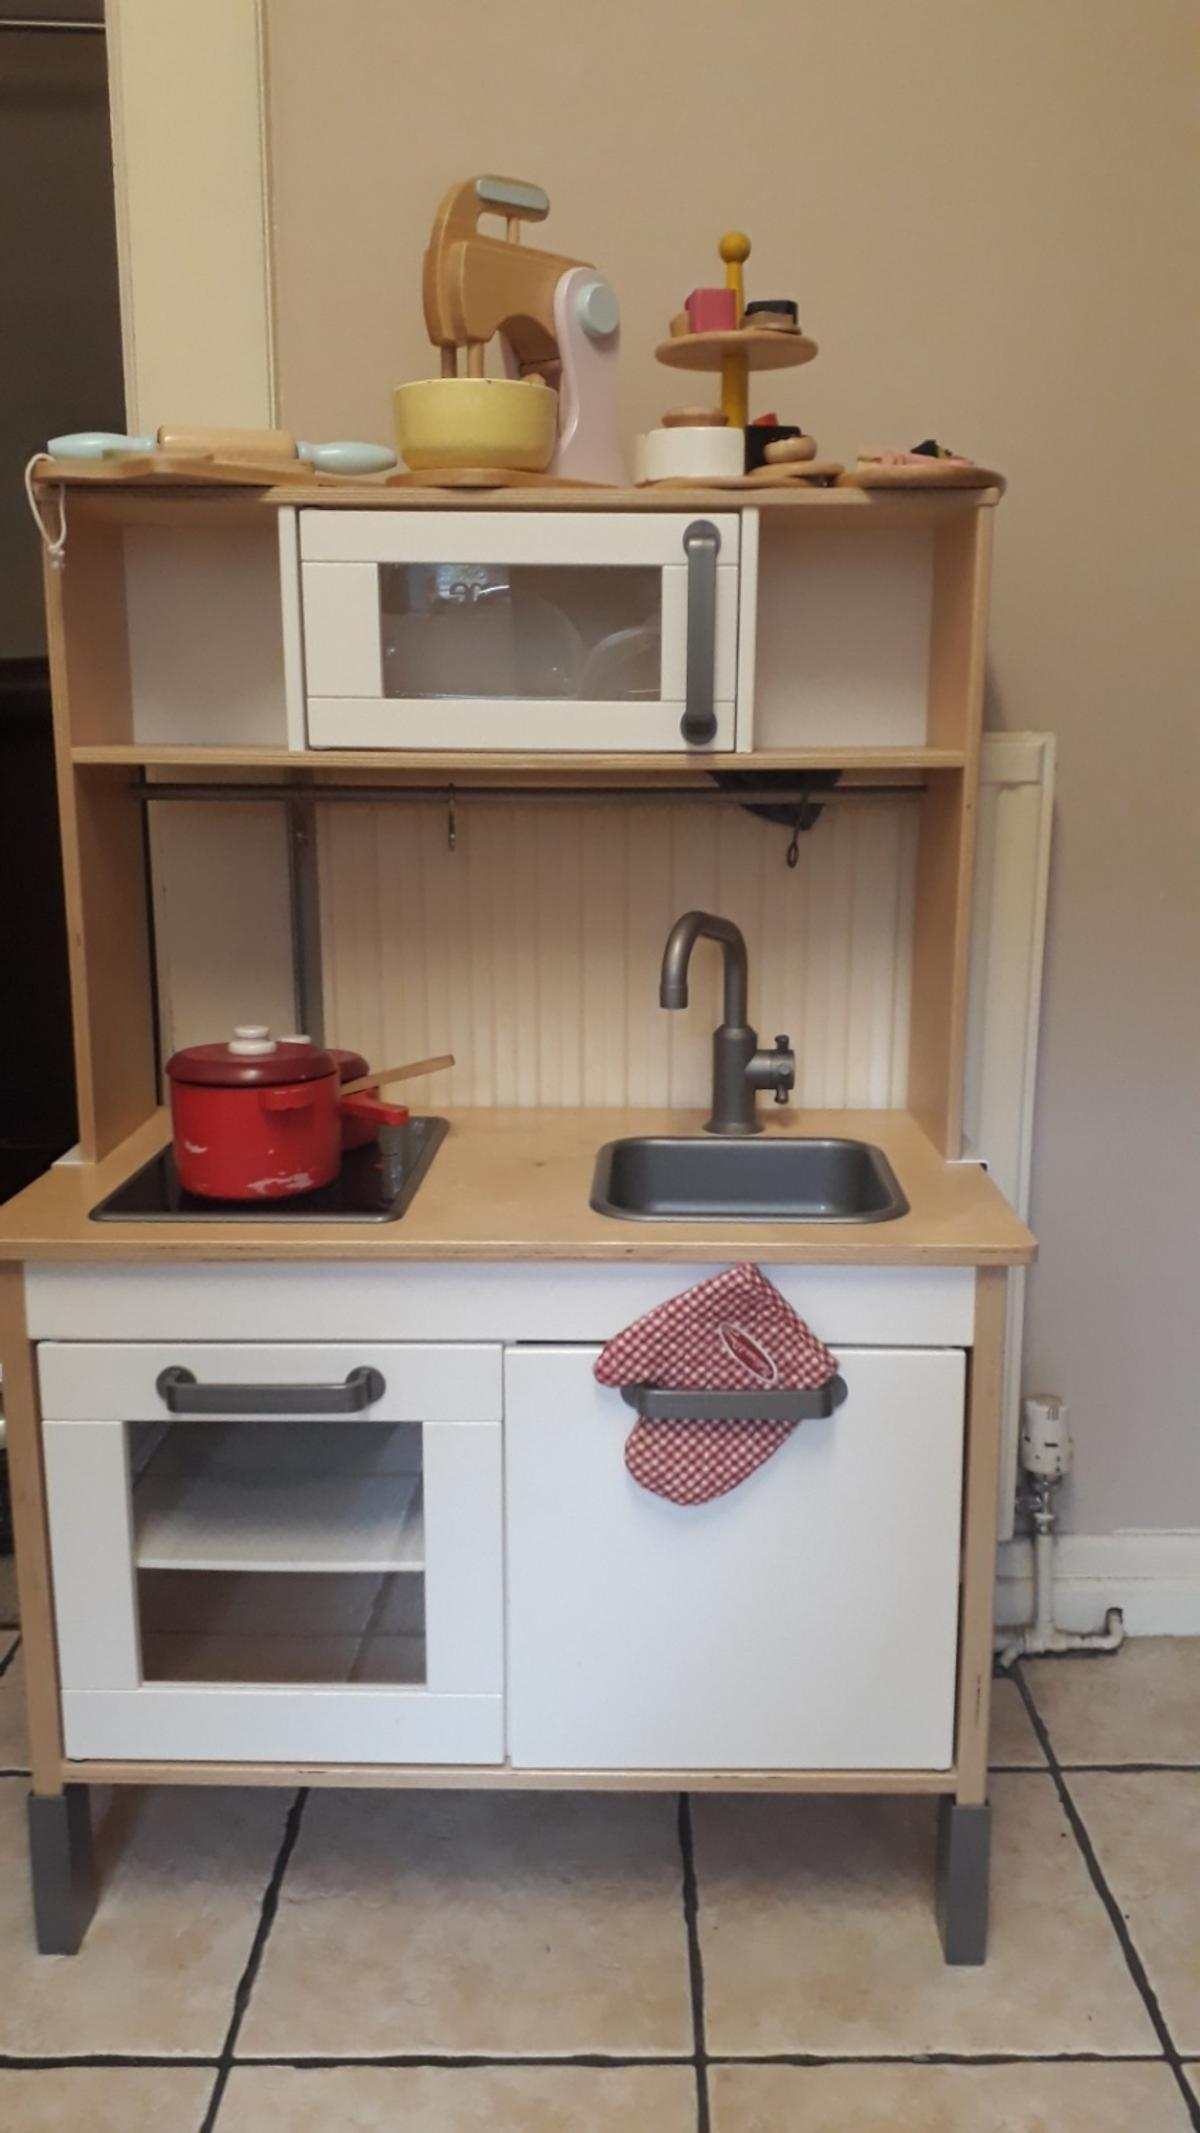 Ikea Play Kitchen In Nn3 Northampton For 3500 For Sale Shpock